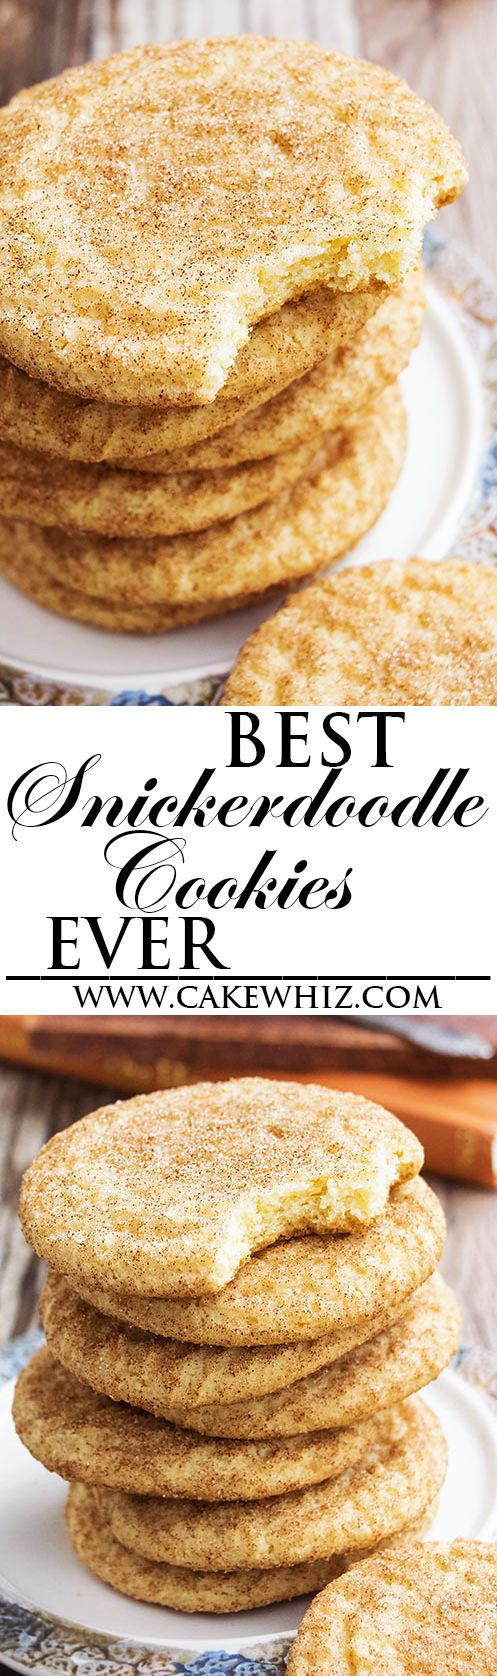 This classic SNICKERDOODLES recipe yields soft and chewy cookies with crispy, sugary tops. These old fashioned snickerdoodle cookies are packed with cinnamon flavors and are very easy to make. From cakewhiz.com